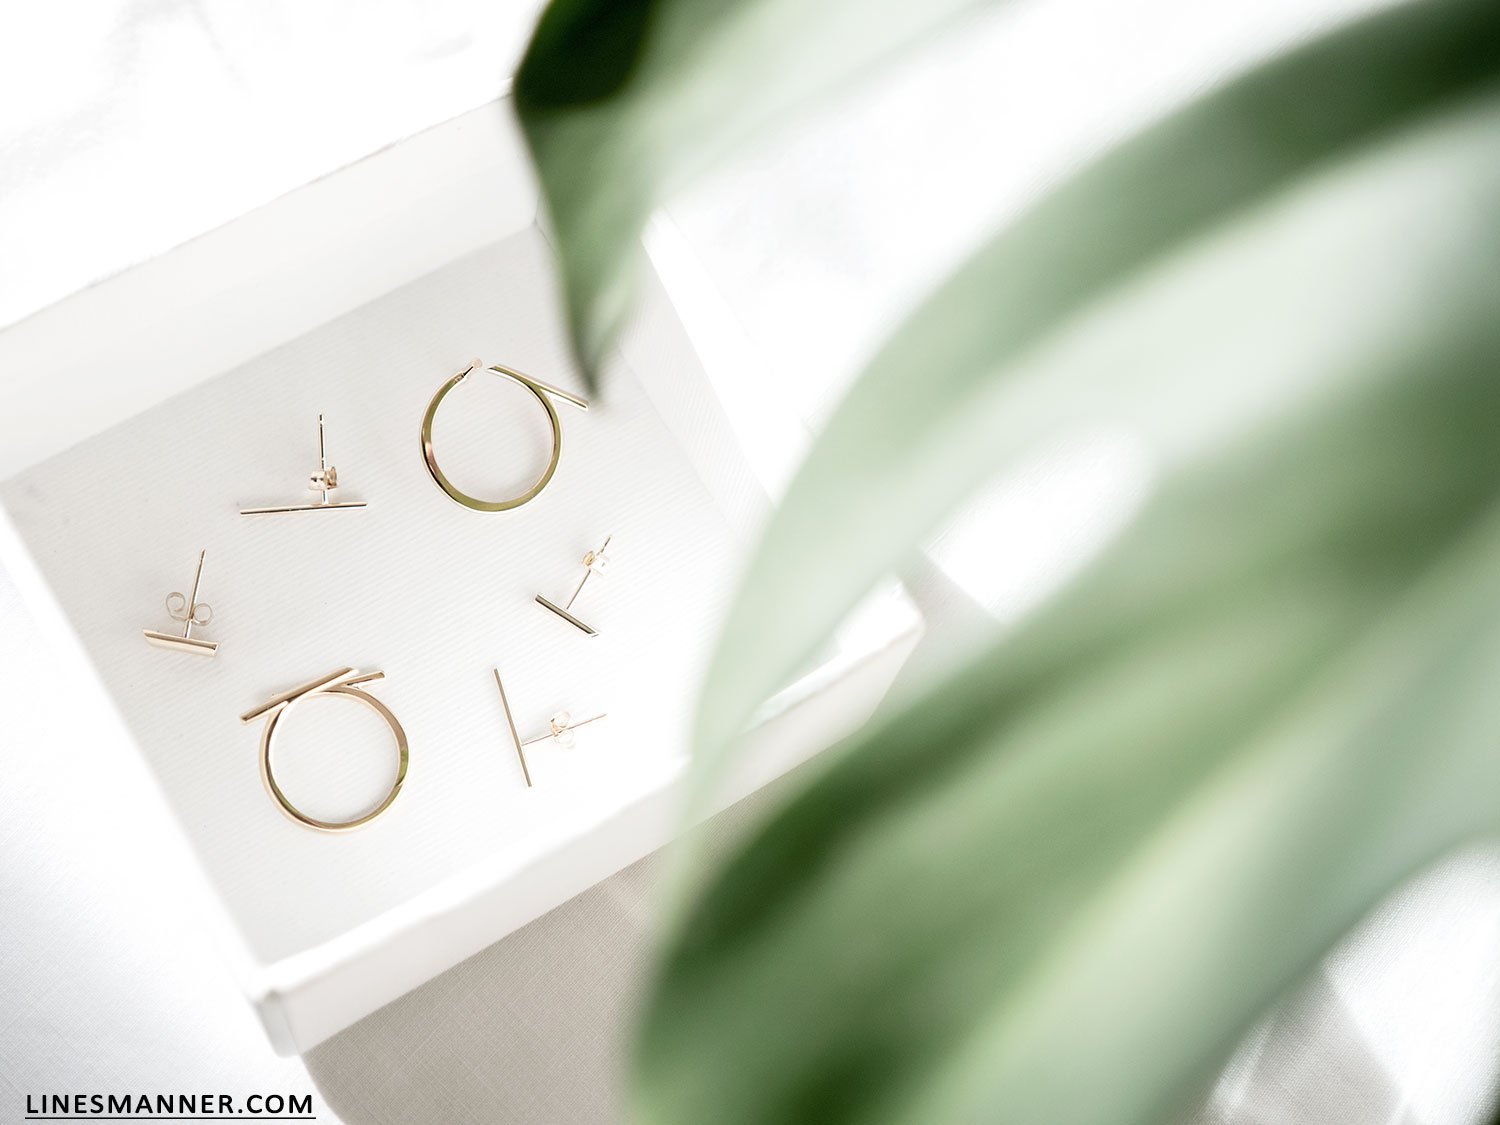 Lines-Manner-Bloglovin-Mejuri-Collaboration-Contest-Minimalism-Edge-NYC-Scandinavian-Pure_and_Simple-Essentials-Details-Gold-Vermeil-Jewelry-Rings-Earrings-White-Whiteout-Subtil-Linear-Geometric-9